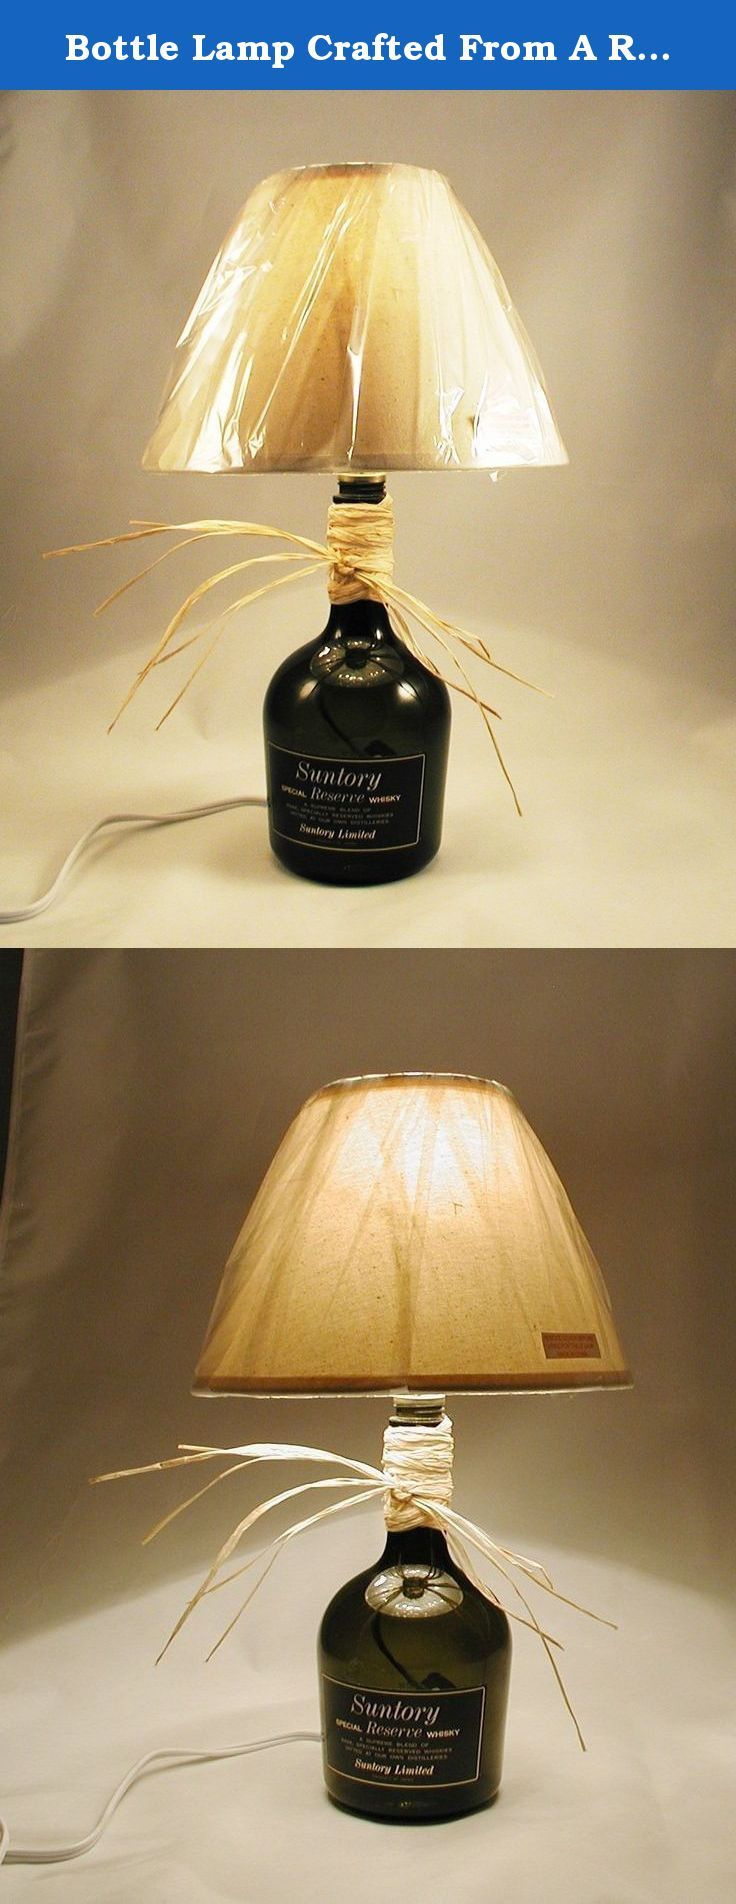 """Bottle Lamp Crafted From A Recycled Suntory Special Reserve Whisky Bottle. Shipping is included. Perfect lamp for a corner, counter top, end table, book shelf, bar or use as a night light in the bathroom. Crafted from a recycled Suntory Special Reserve whisky bottle. The bottle is darker green and the shade is off-white. Lamp is approximately 15"""" tall and approximately 11"""" wide (including the raffia). It burns up to a 60 watt bulb under the shade. The lamp shade and a 40 watt bulb are..."""